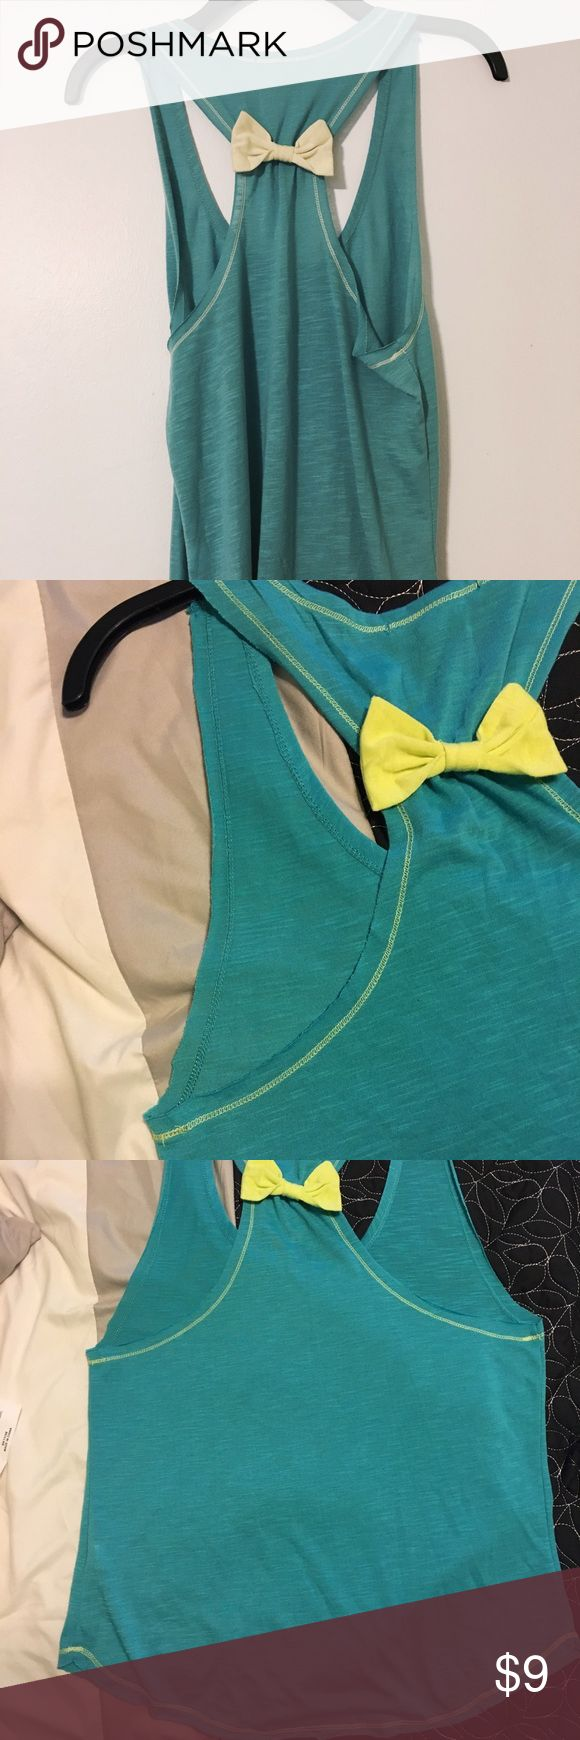 Blue and Green tank top with a bow Such a cute tank top, I just never wear. Worn once. Great condition. Super cute for summer. 💞 (or, since it's so hot in Fl, you could wear it in January😉) Belle Du Jour Tops Tank Tops